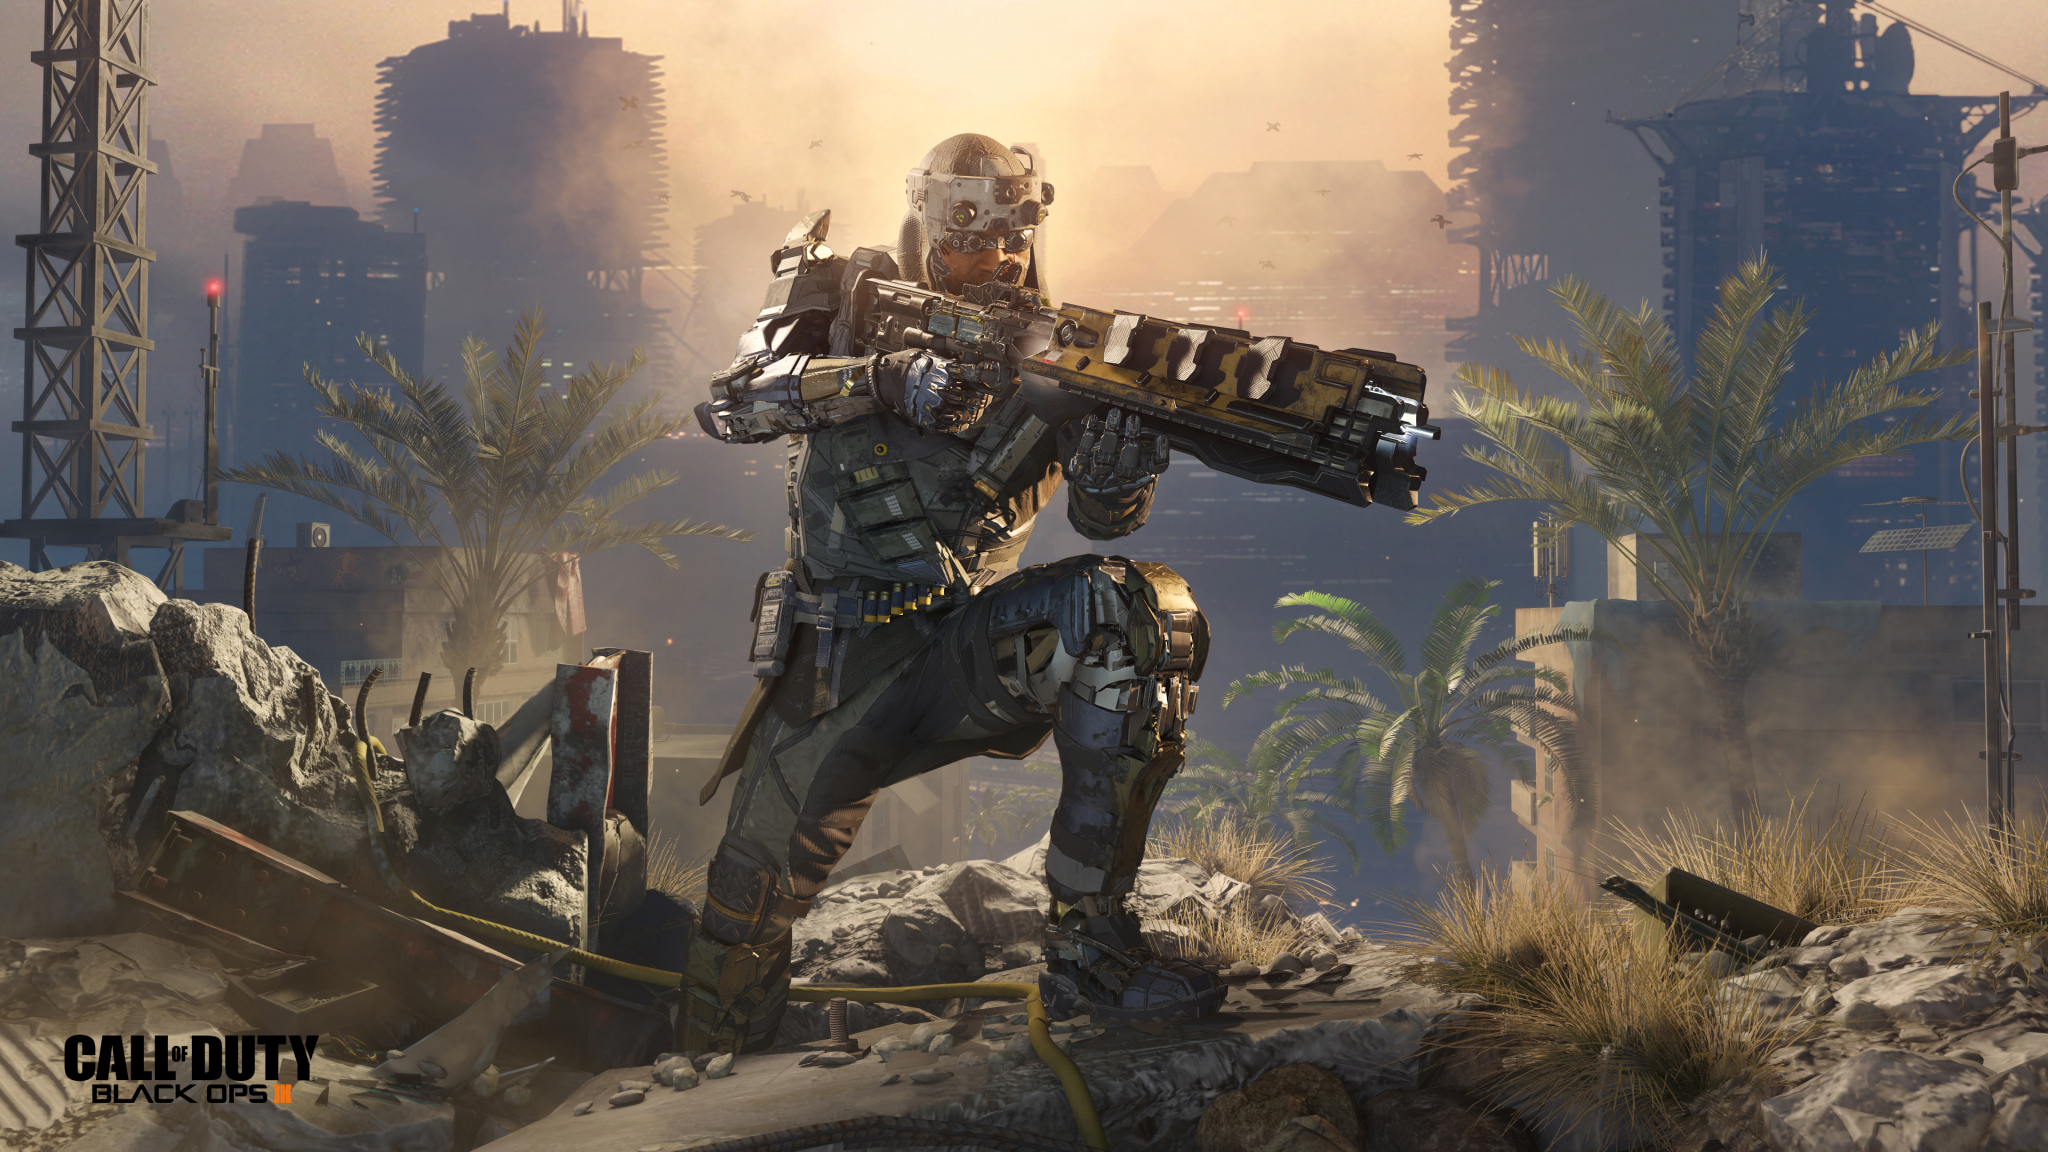 Call of Duty: <b>Black Ops III</b> Review - Giant Bomb